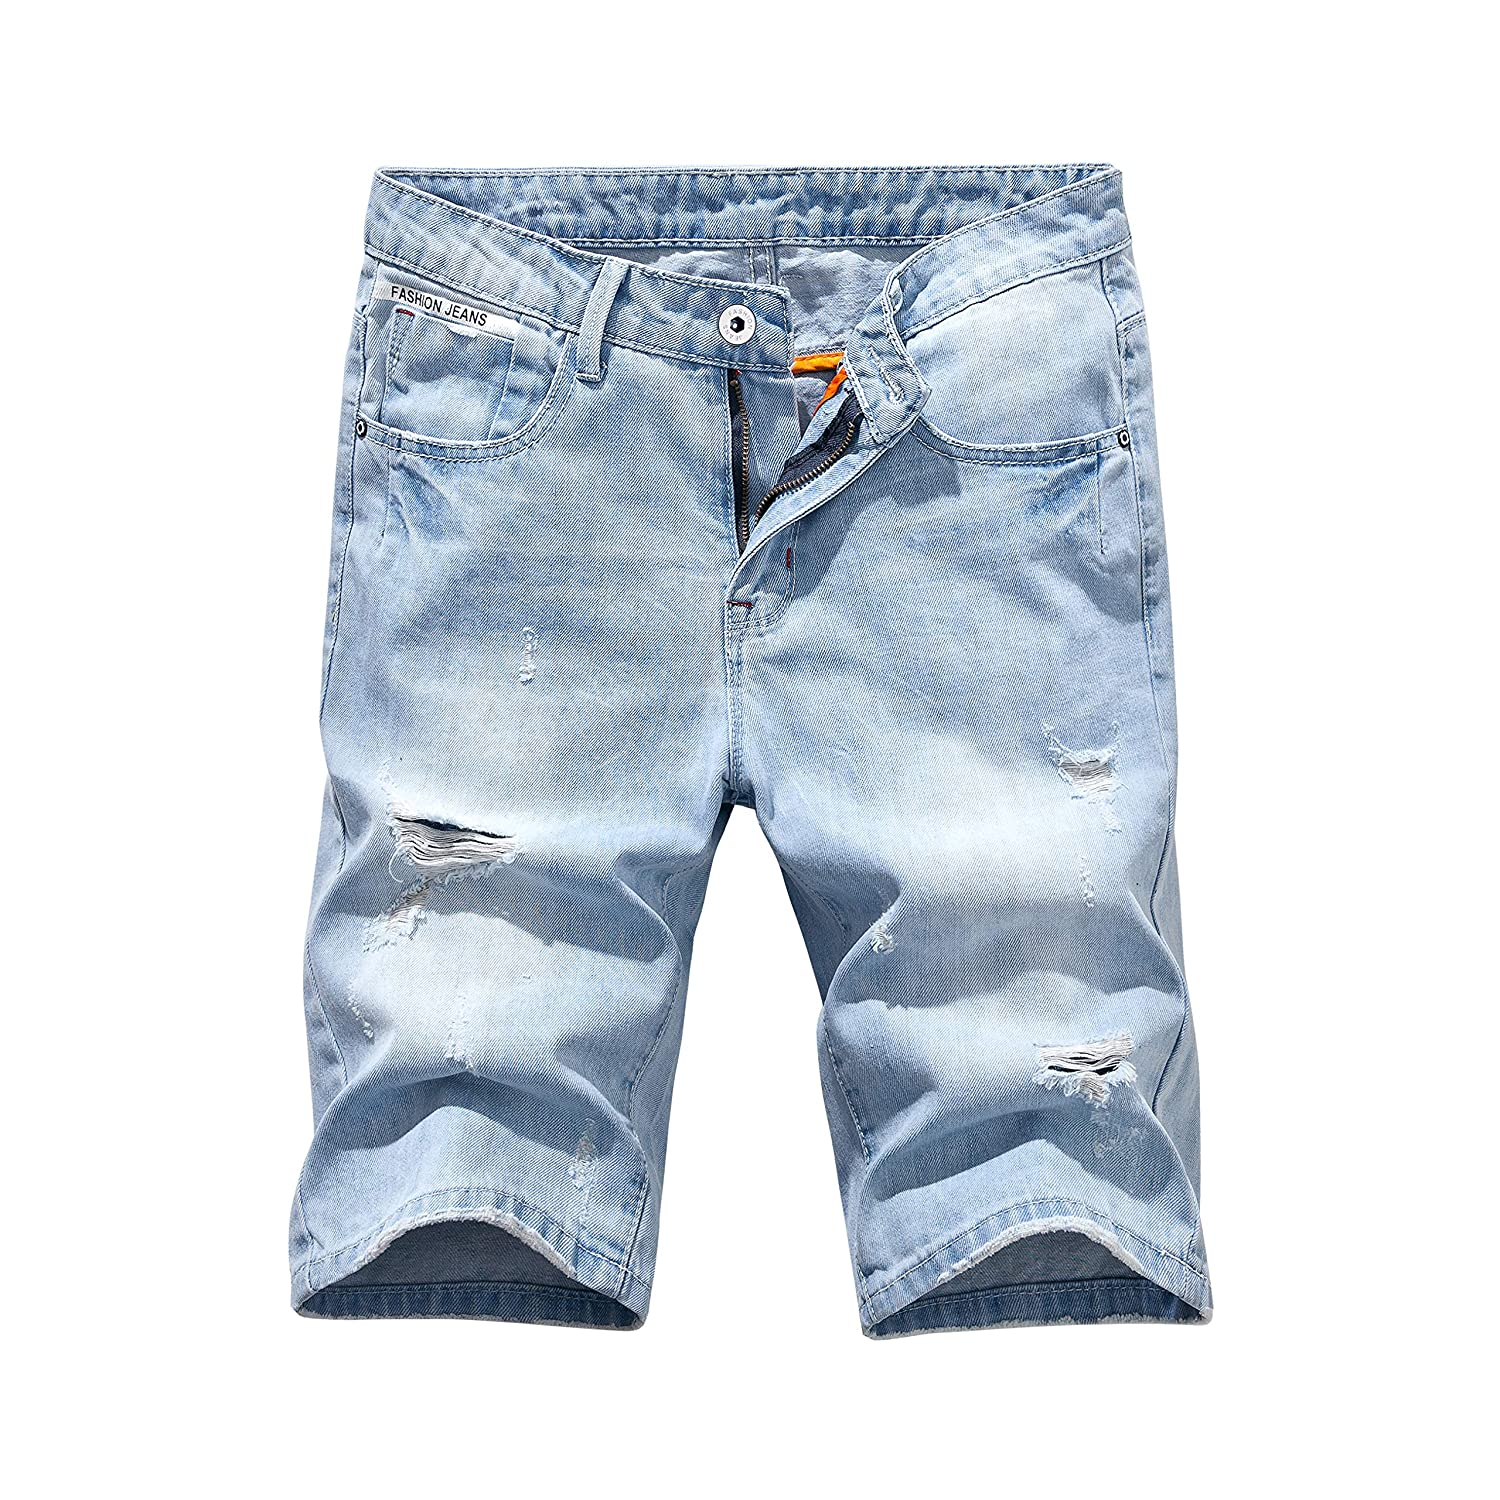 Heart Yuxuan Men's Fashion Slim Casual Denim Short